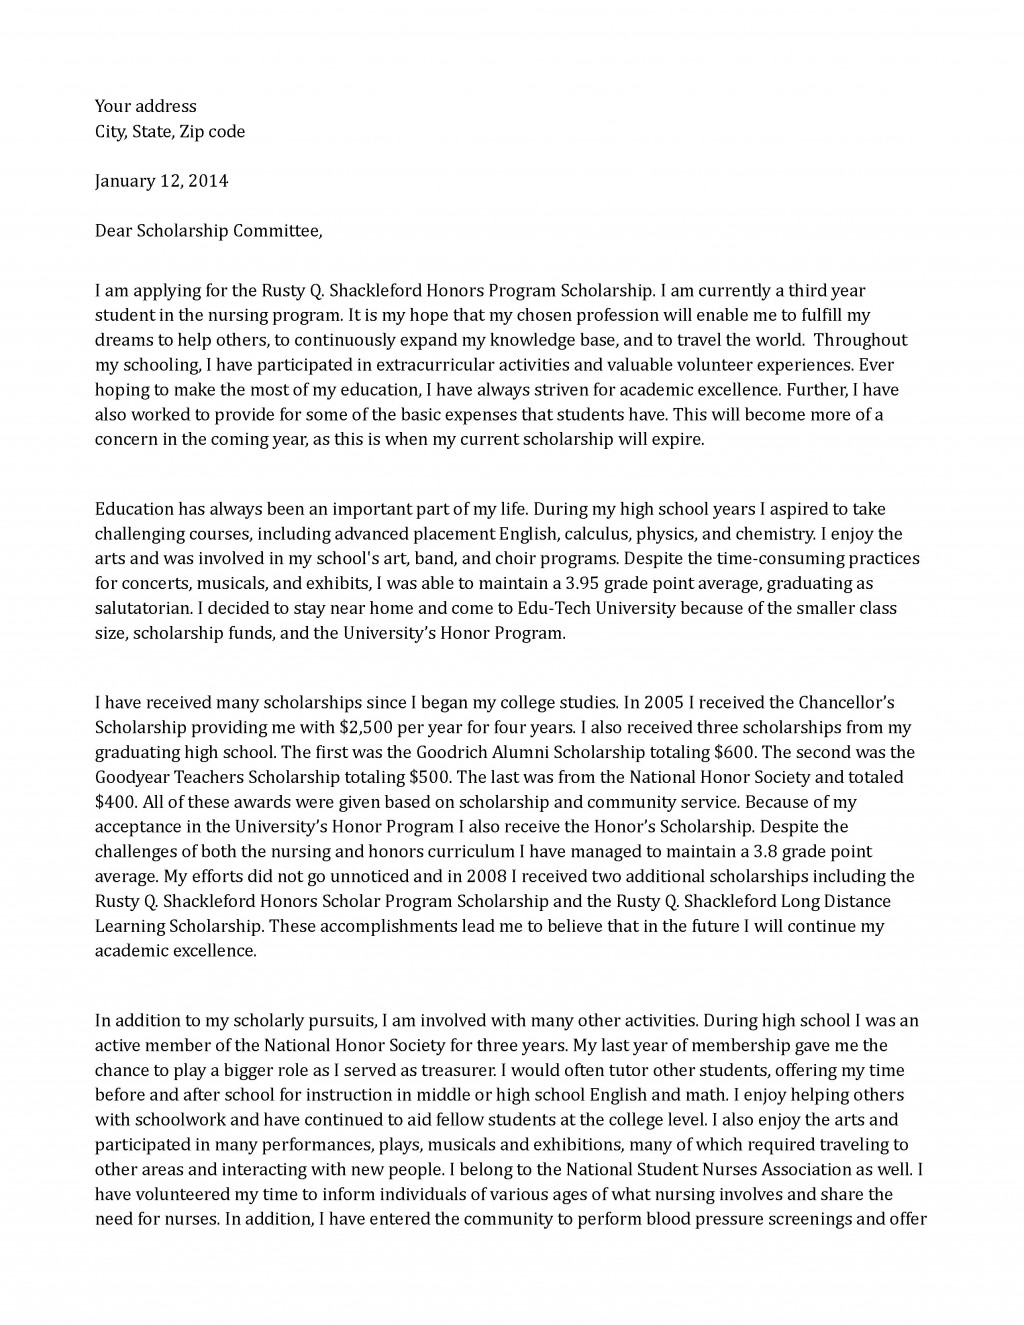 015 Scholarship Application Essay Example Sample Honors Program Staggering Mba Tips College Ideas Large